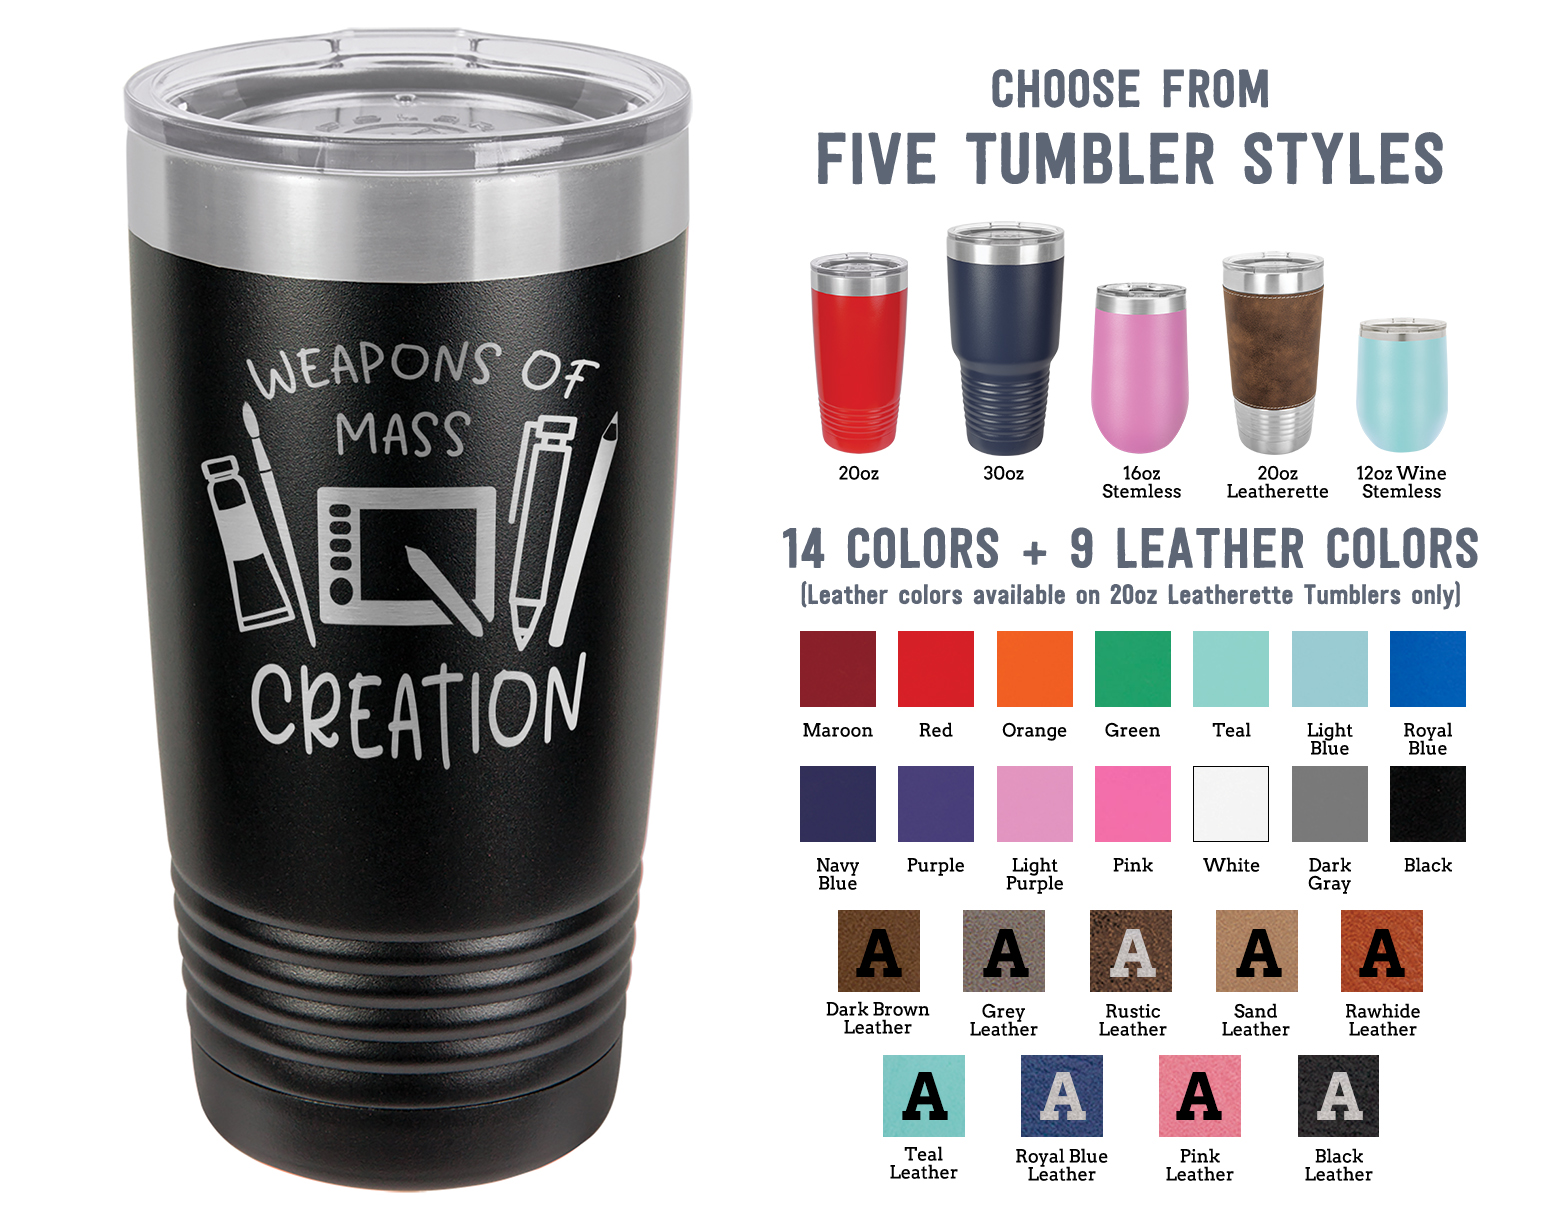 Laser Engraved Tumbler | Weapons of Mass Creation | Perfect Gift for Artists | Stainless Steel Insulated Travel Mug Keep Drinks HOT & COLD | SELECT SIZE & COLOR